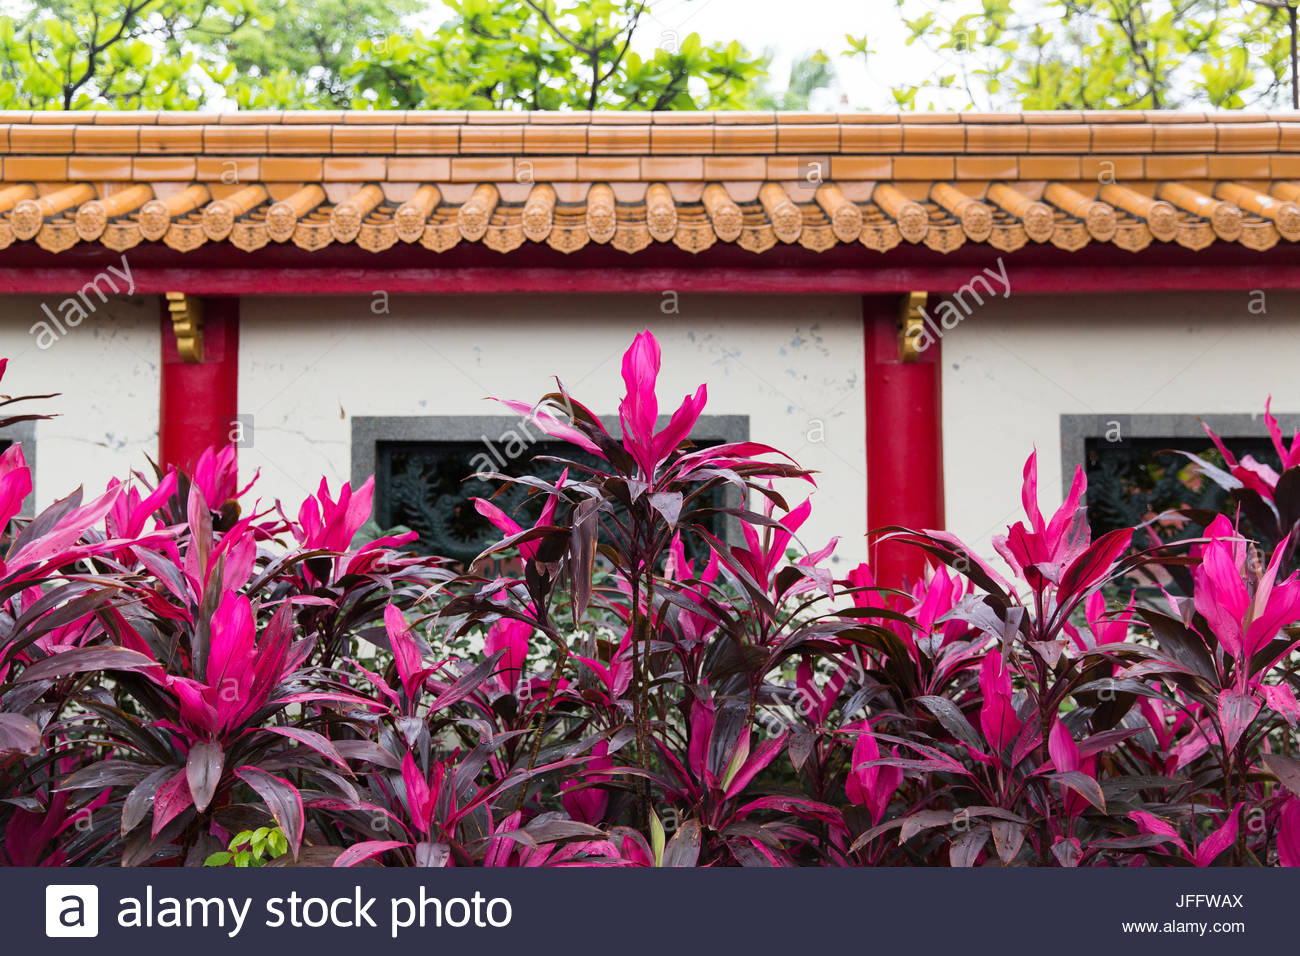 Colorful shrubbery inside the Dalongdong Baoan Temple. - Stock Image